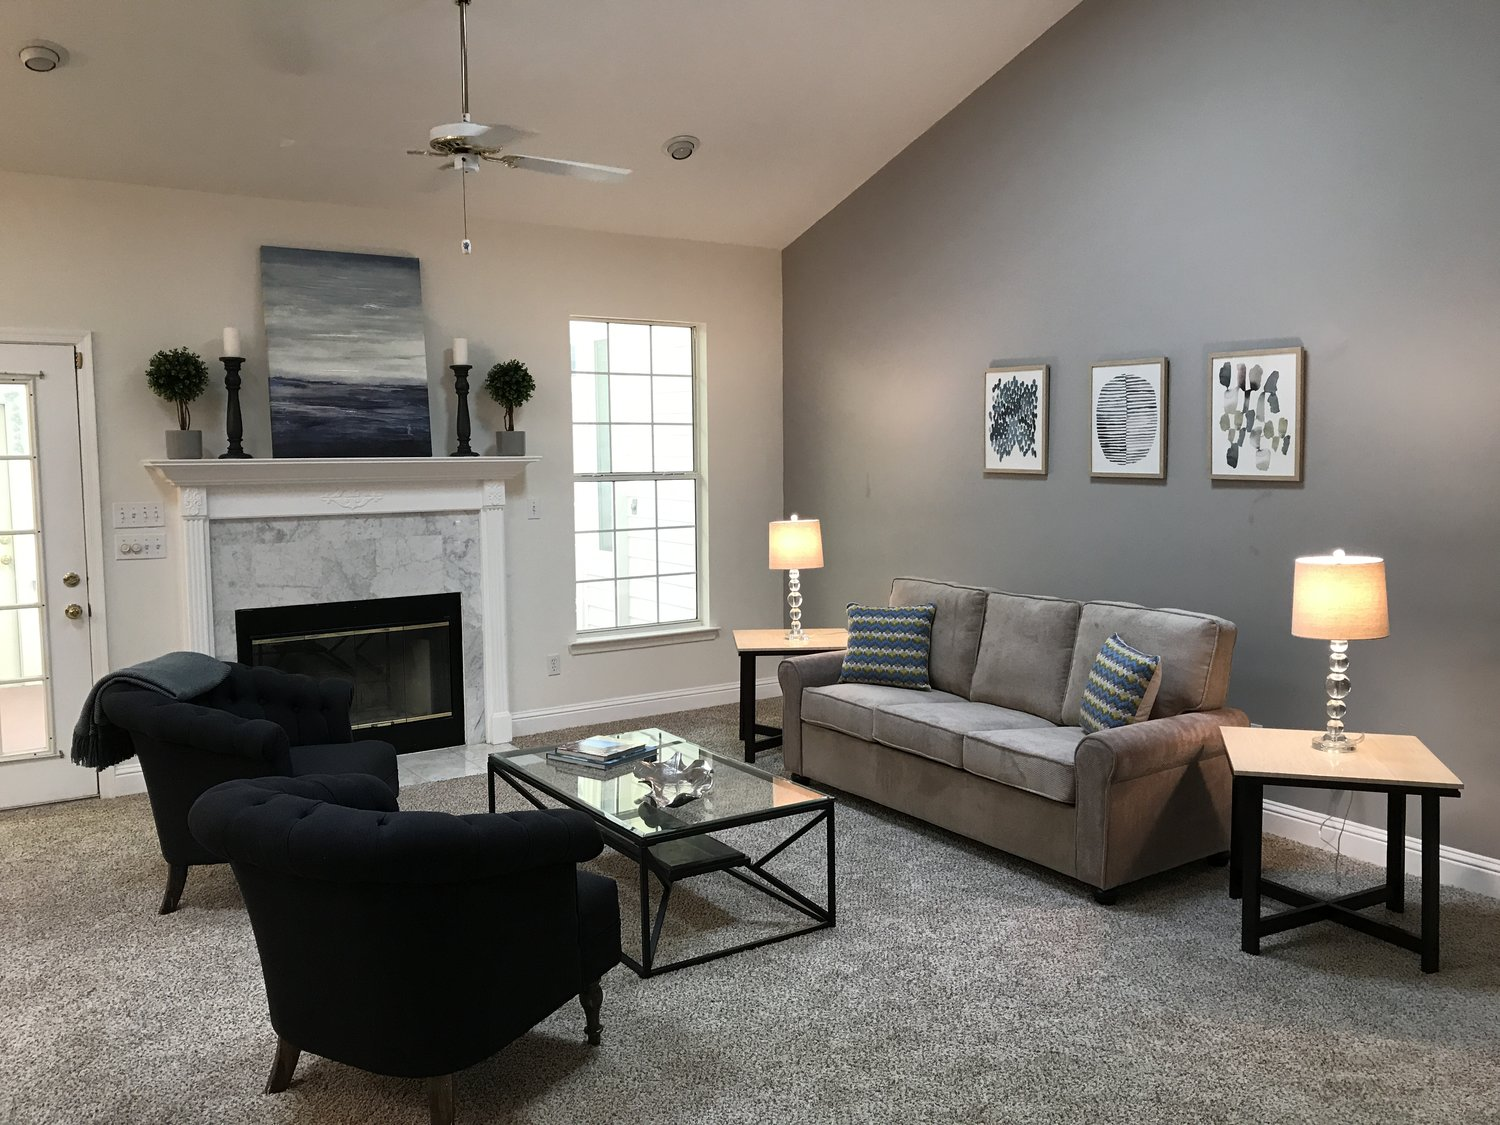 Blog — Tallahassee Home Staging